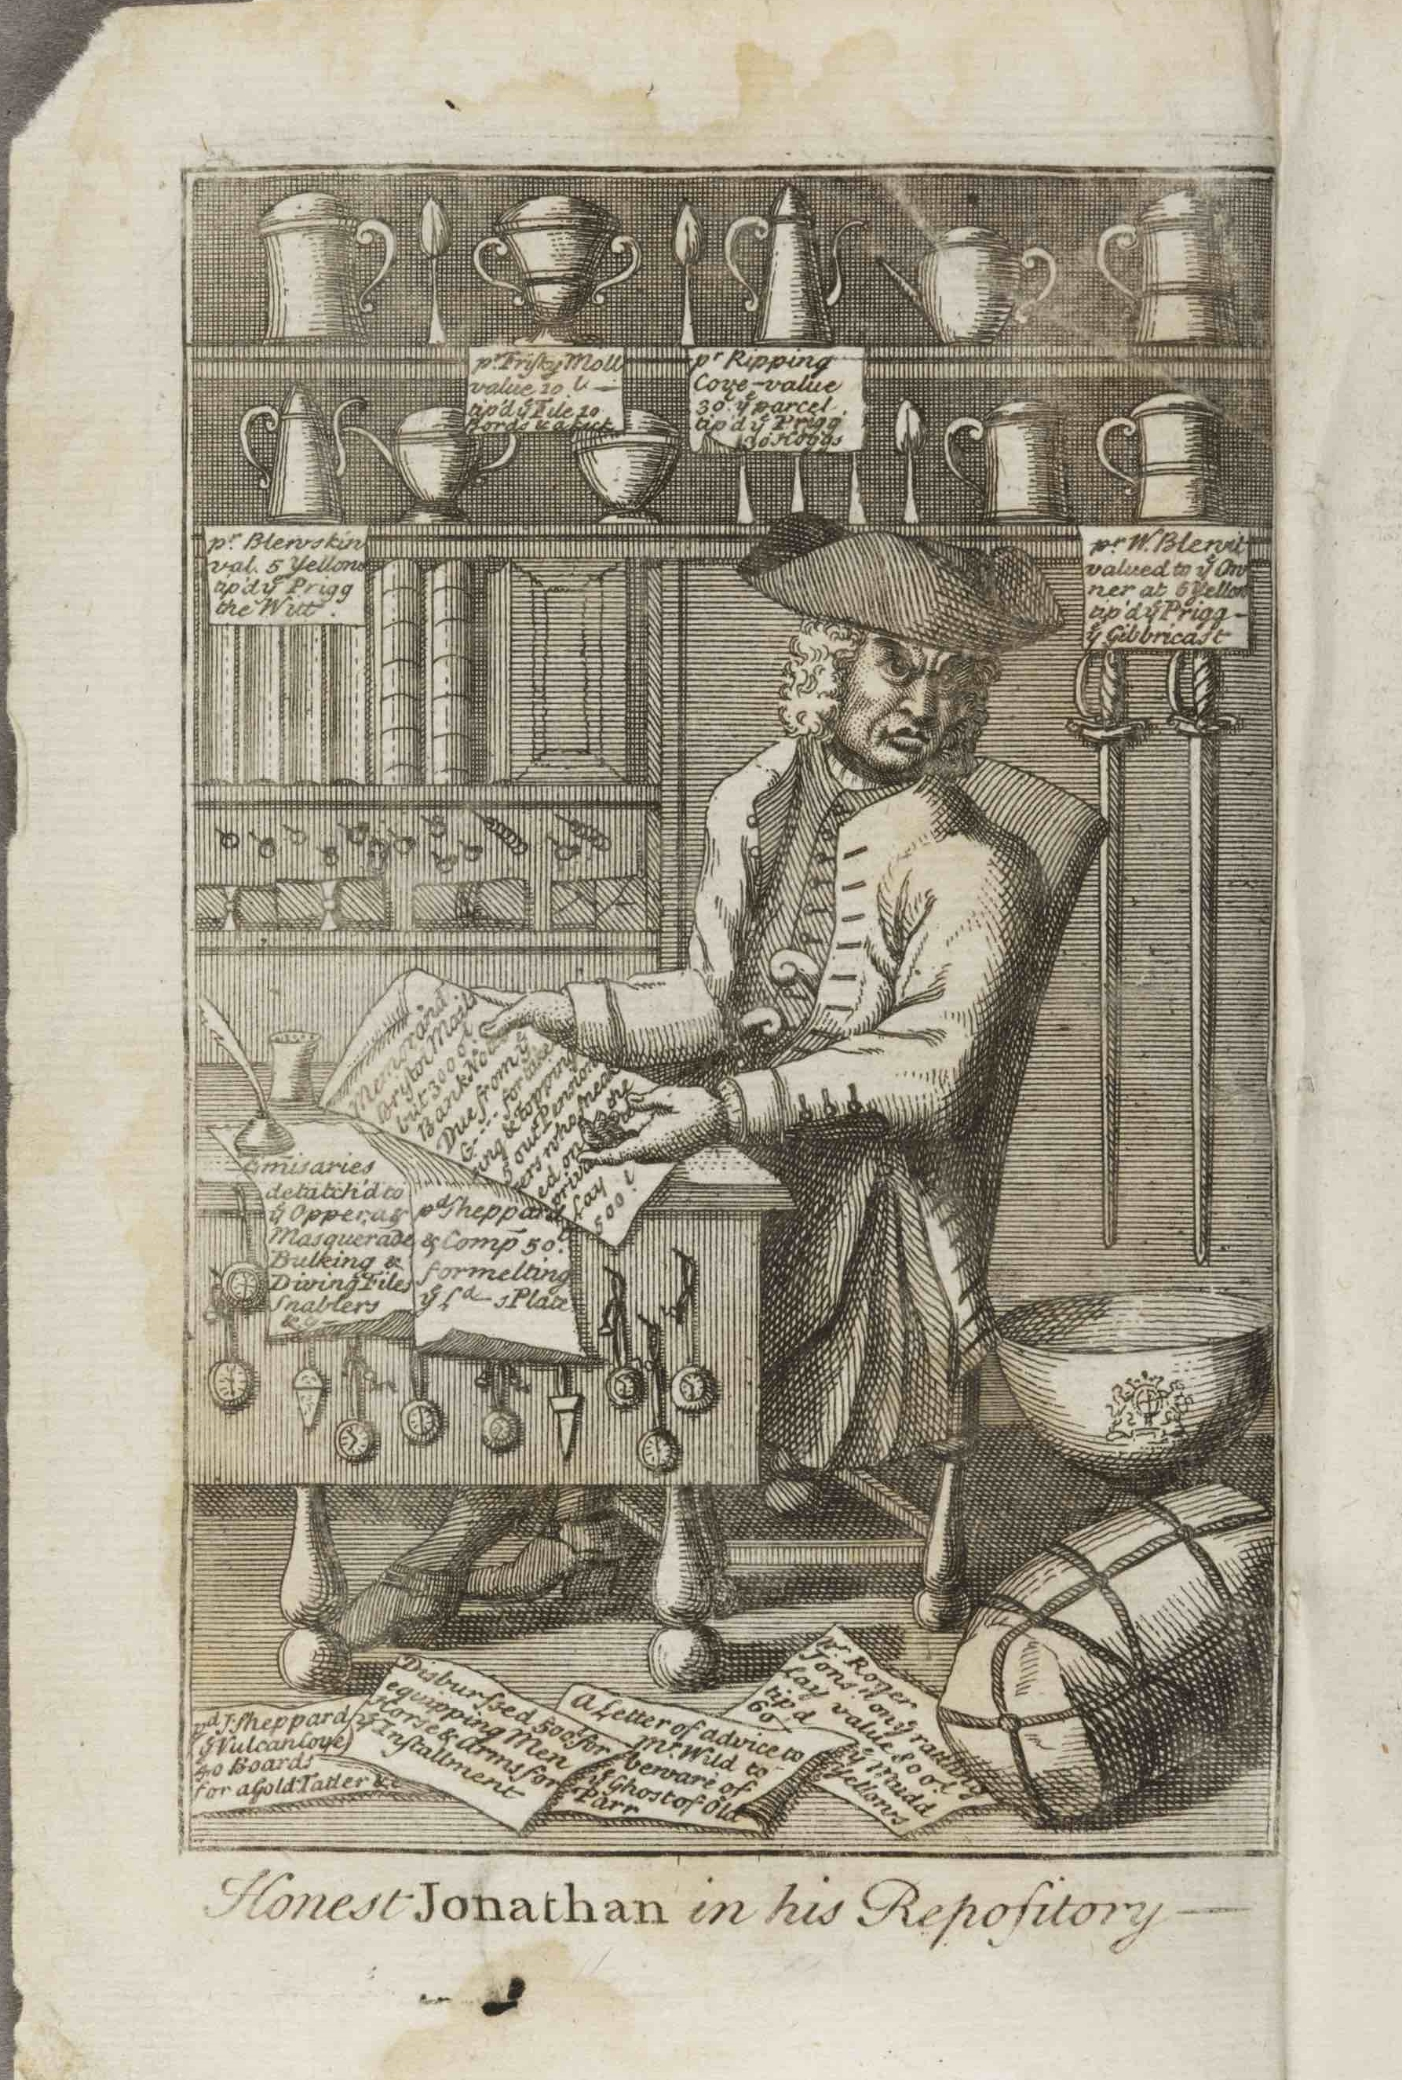 """""""Honest Jonathan in His Repository."""" Wild as head of a criminal """"Corporation,"""" the private business behind the public front. from  Life and Glorious Actions . . . of Jonathan Wilde  (London, 1725). Courtesy Huntington Library, San Marino, California"""